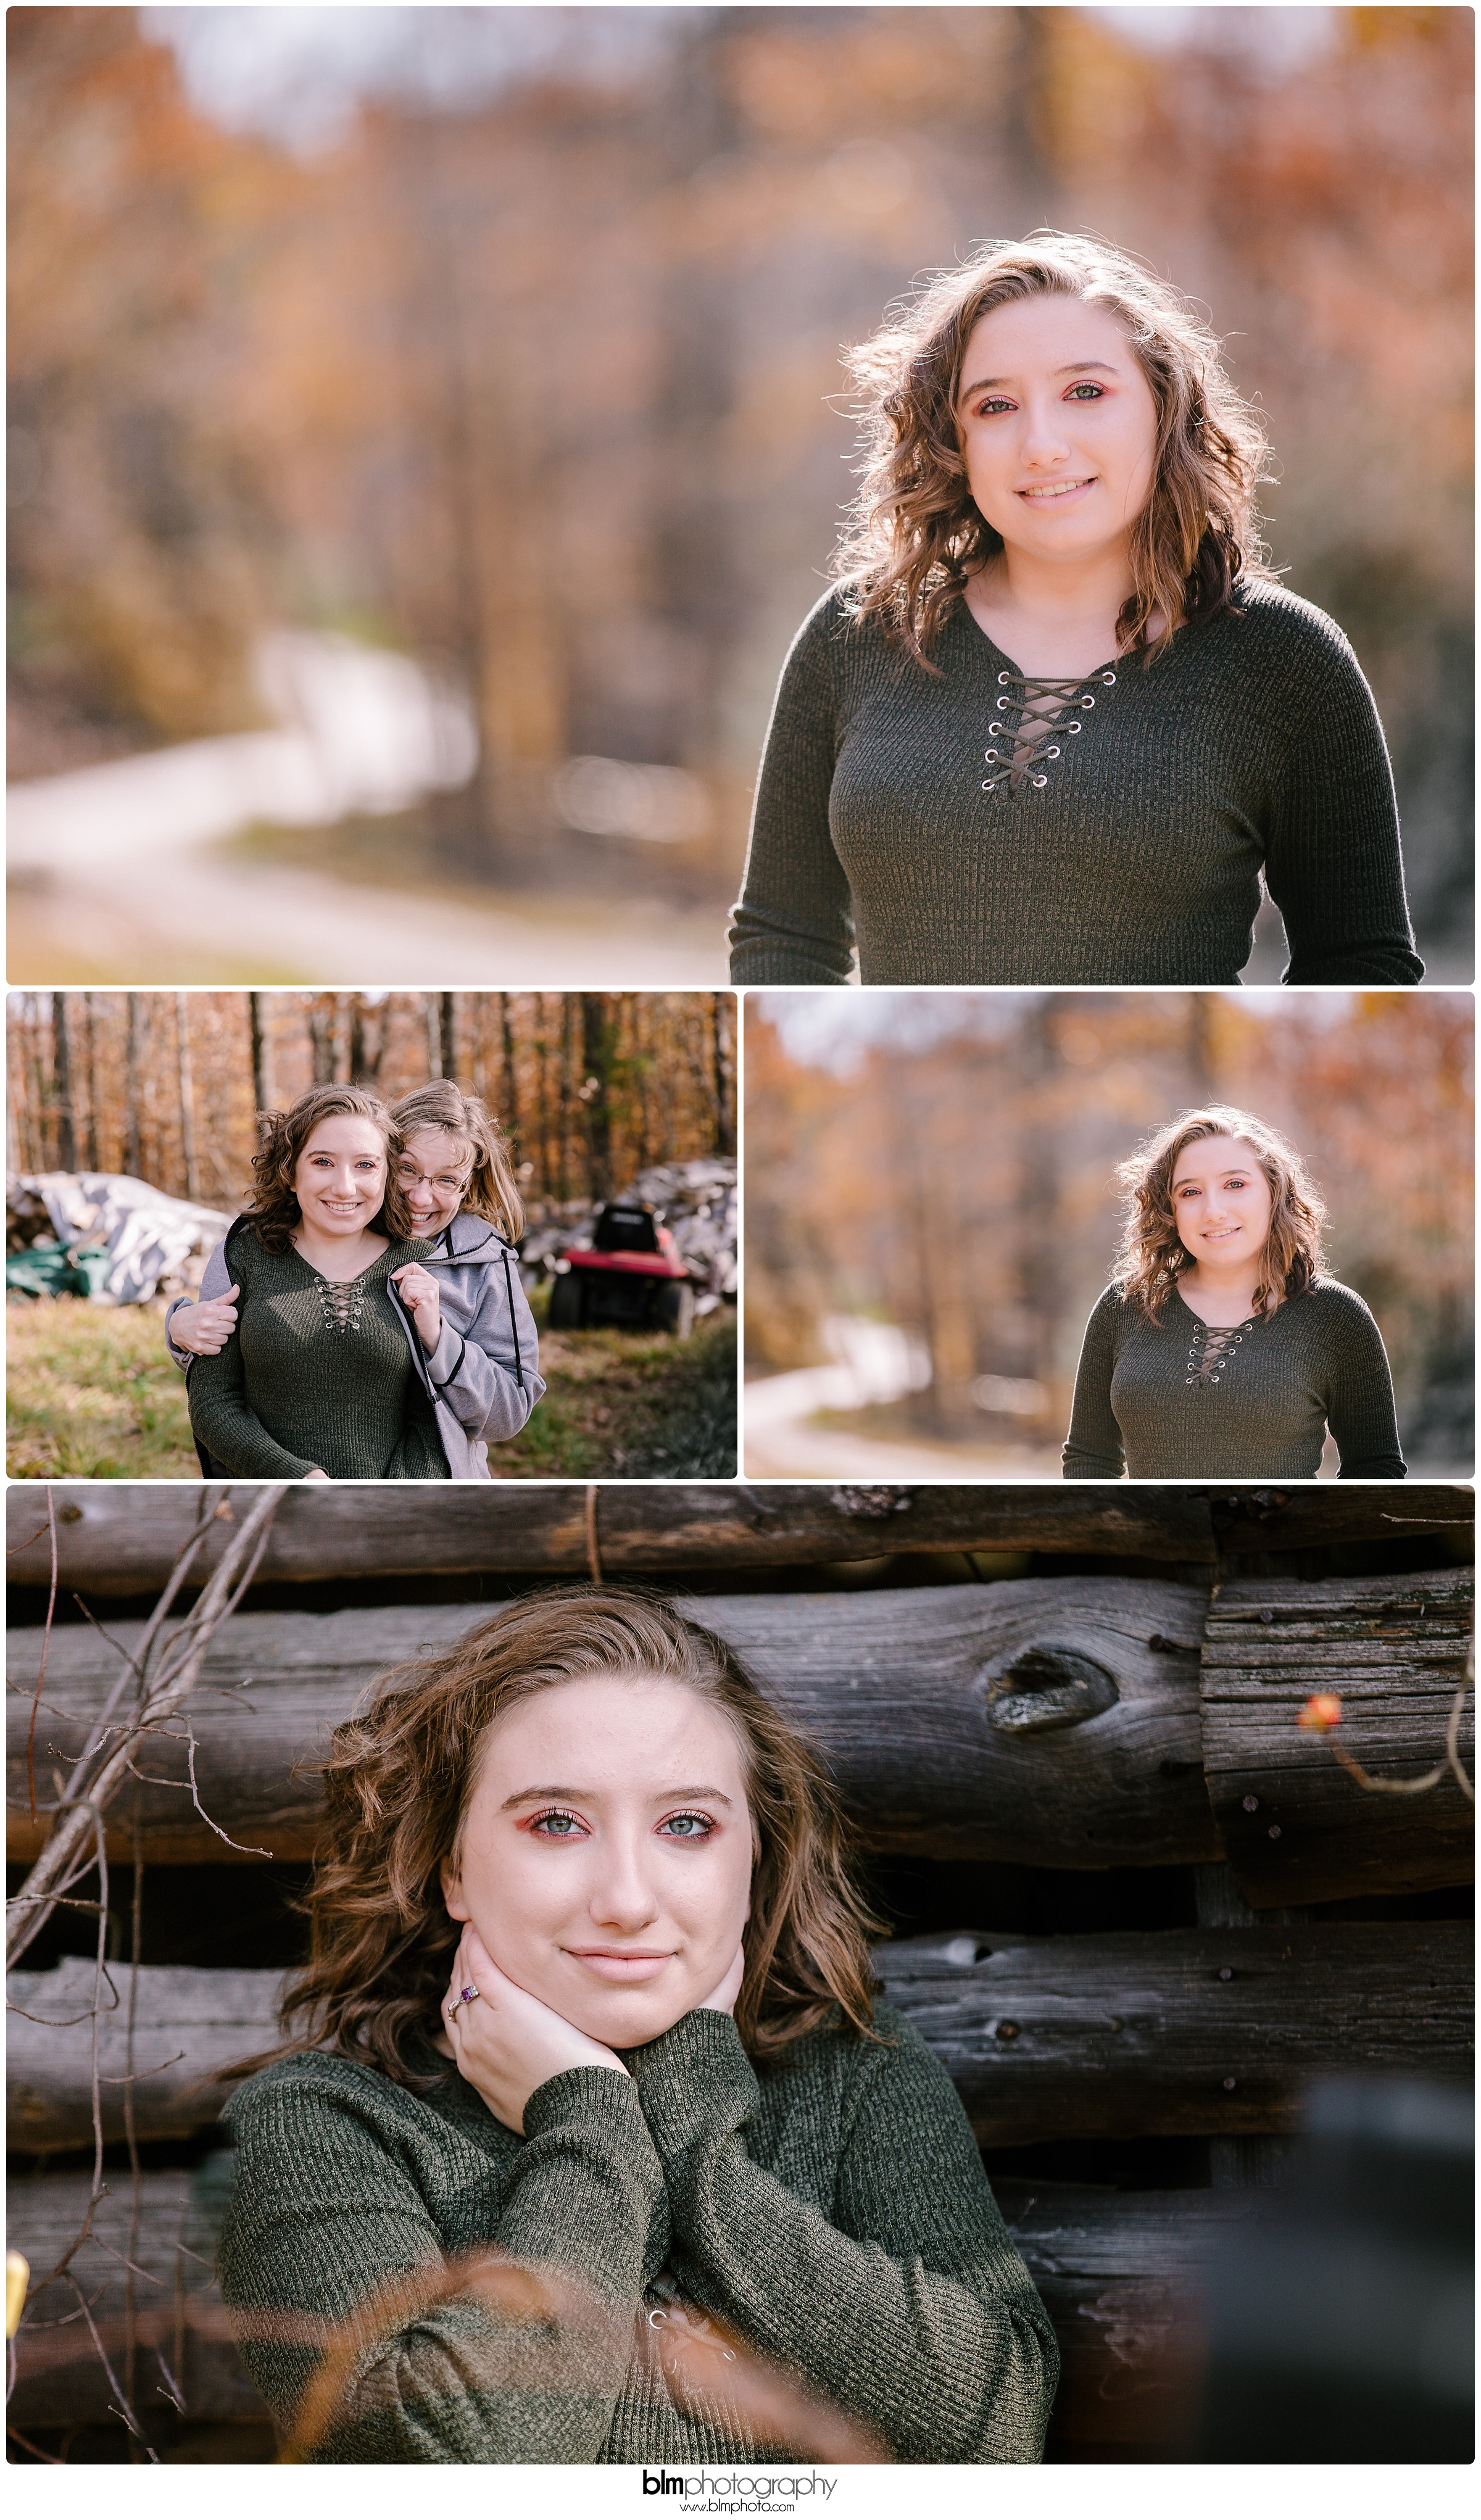 Ali,Ali Freed,Alison Freed,Alison Freed_Senior-Portraits,BLM,Brianna Morrissey,Brie Morrissey,Cold Comfort Farm,Conant High School,Female Senior Portrait,High School Senior,Nov,November,On Location Portrait,Outdoor Portrait,Photo,Photographer,Photography,Senior Photos,Senior Pictures,Senior Portraits,www.blmphoto.com/contact,©BLM Photography 2018,